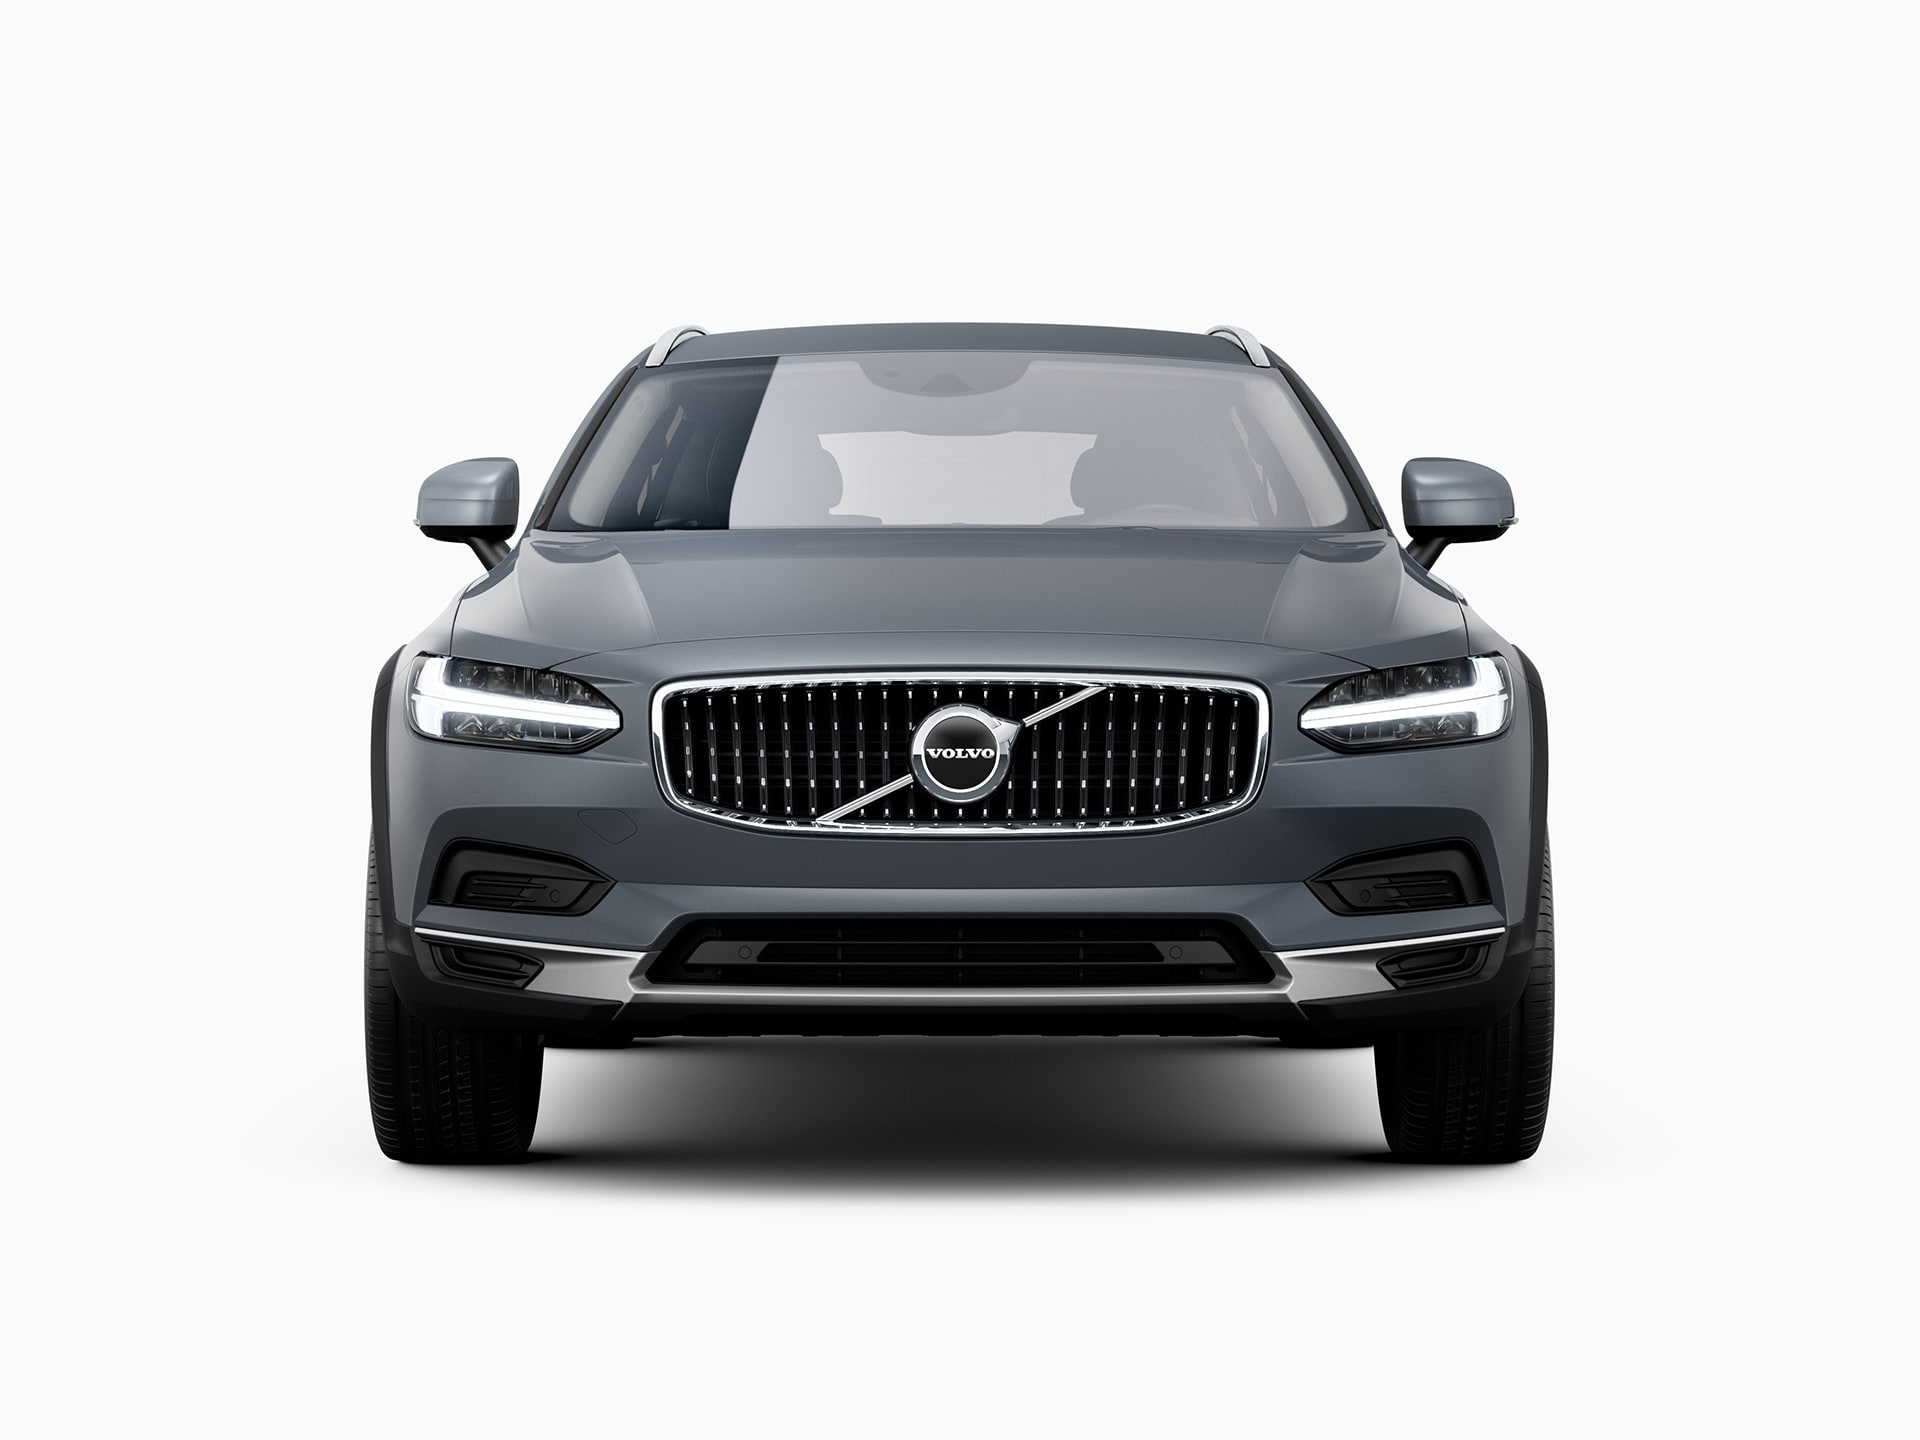 The front of a Volvo V90 Cross Country.